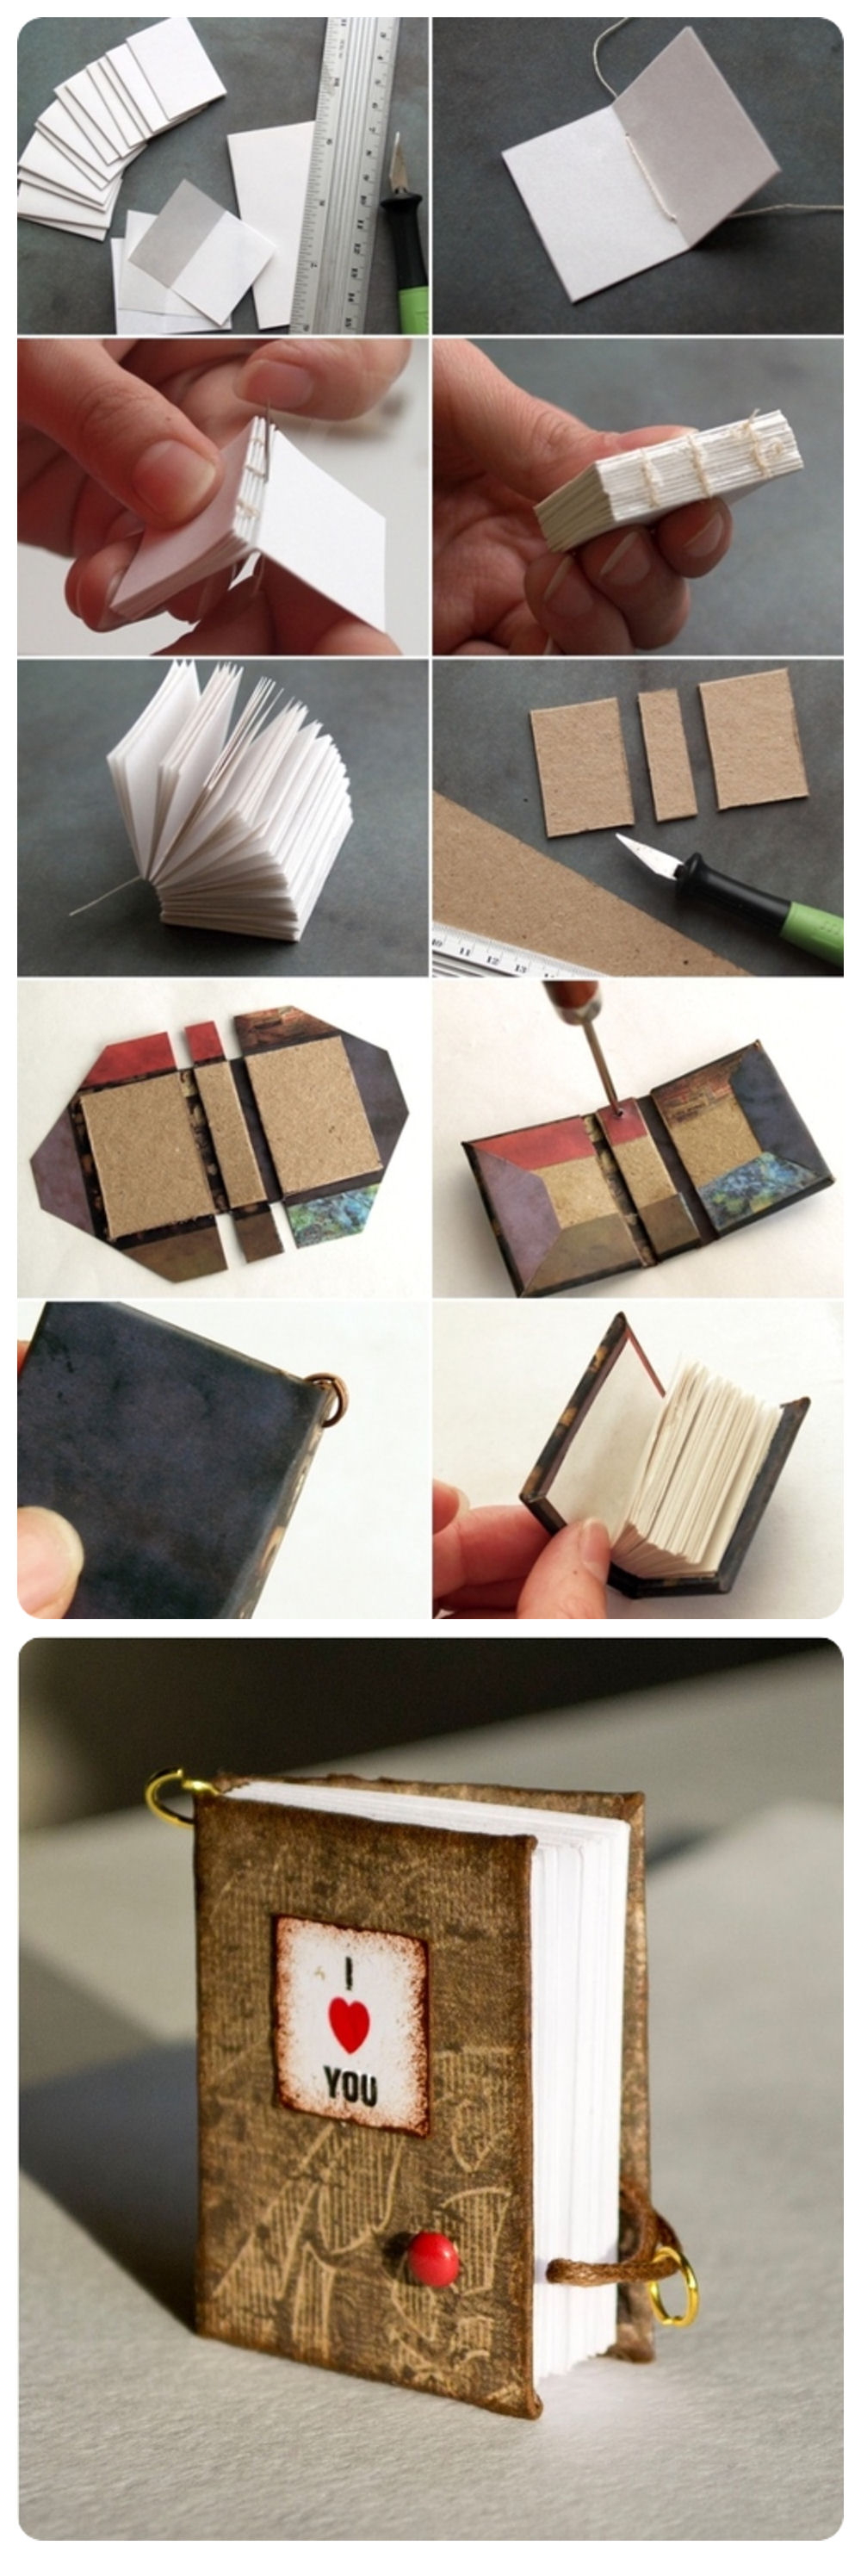 DIY Book Pictures Photos And Images For Facebook Tumblr